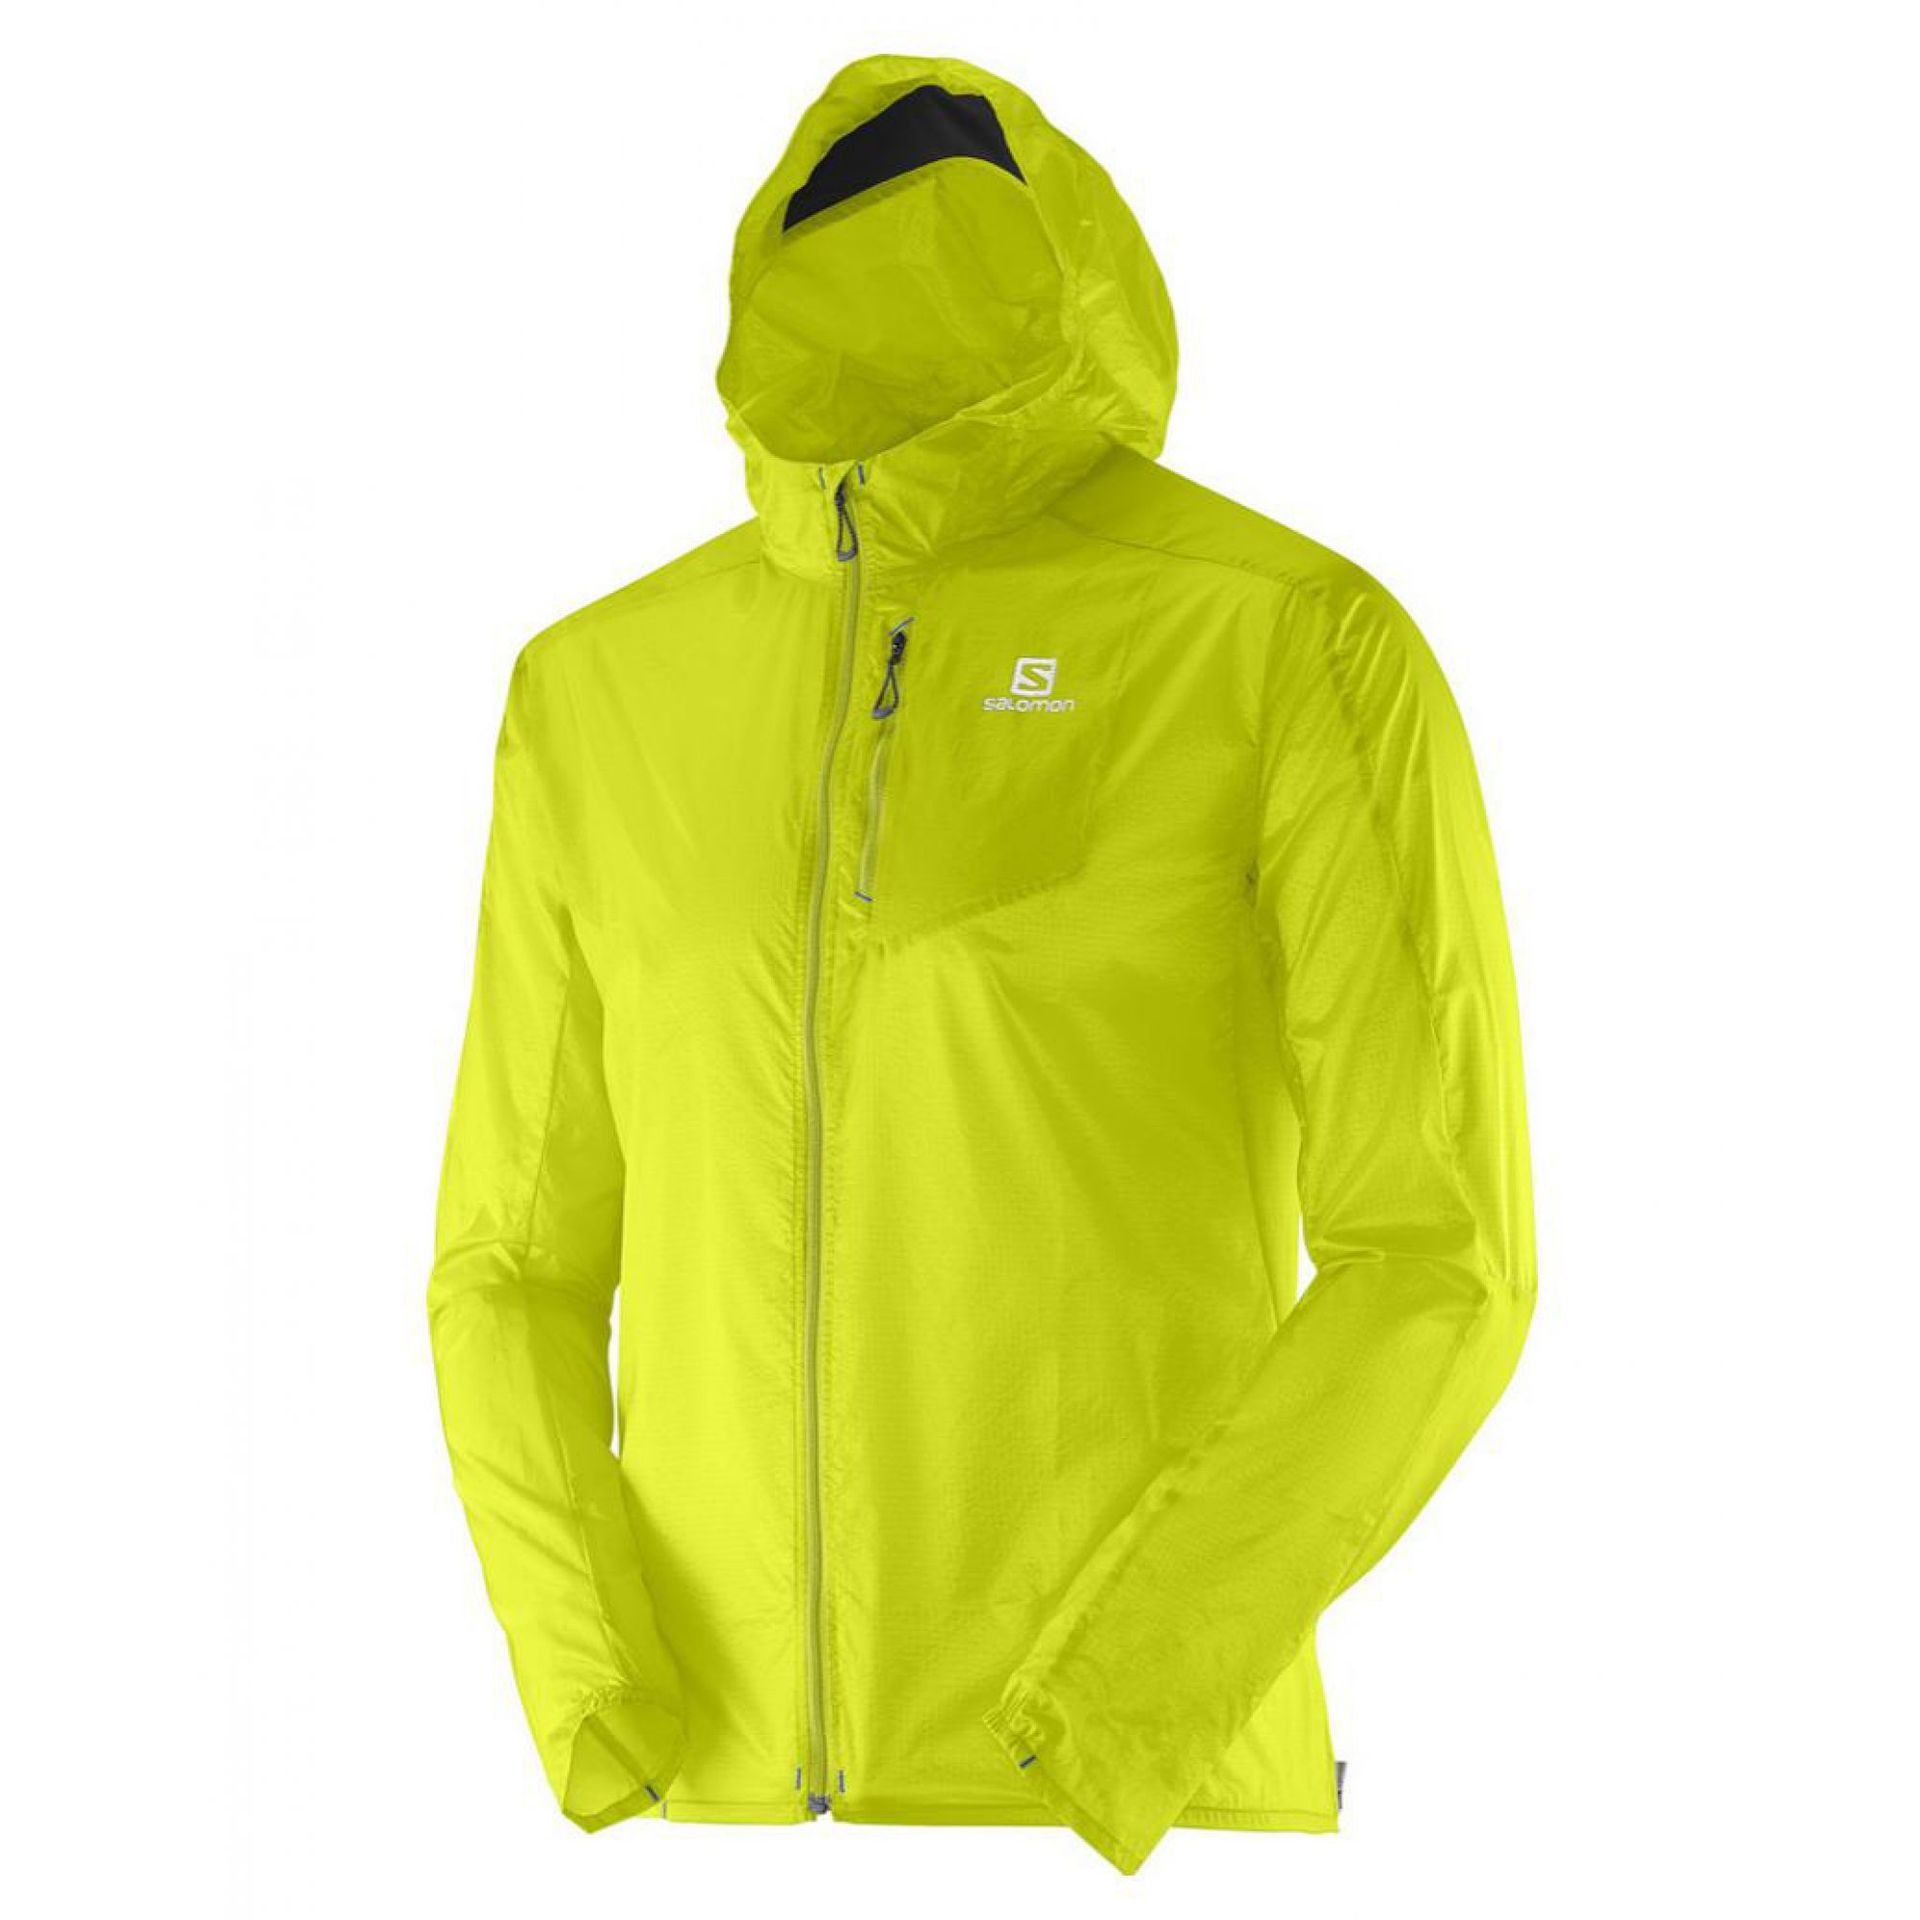 SOFTSHELL SALOMON FAST WING HOODIE limonkowy